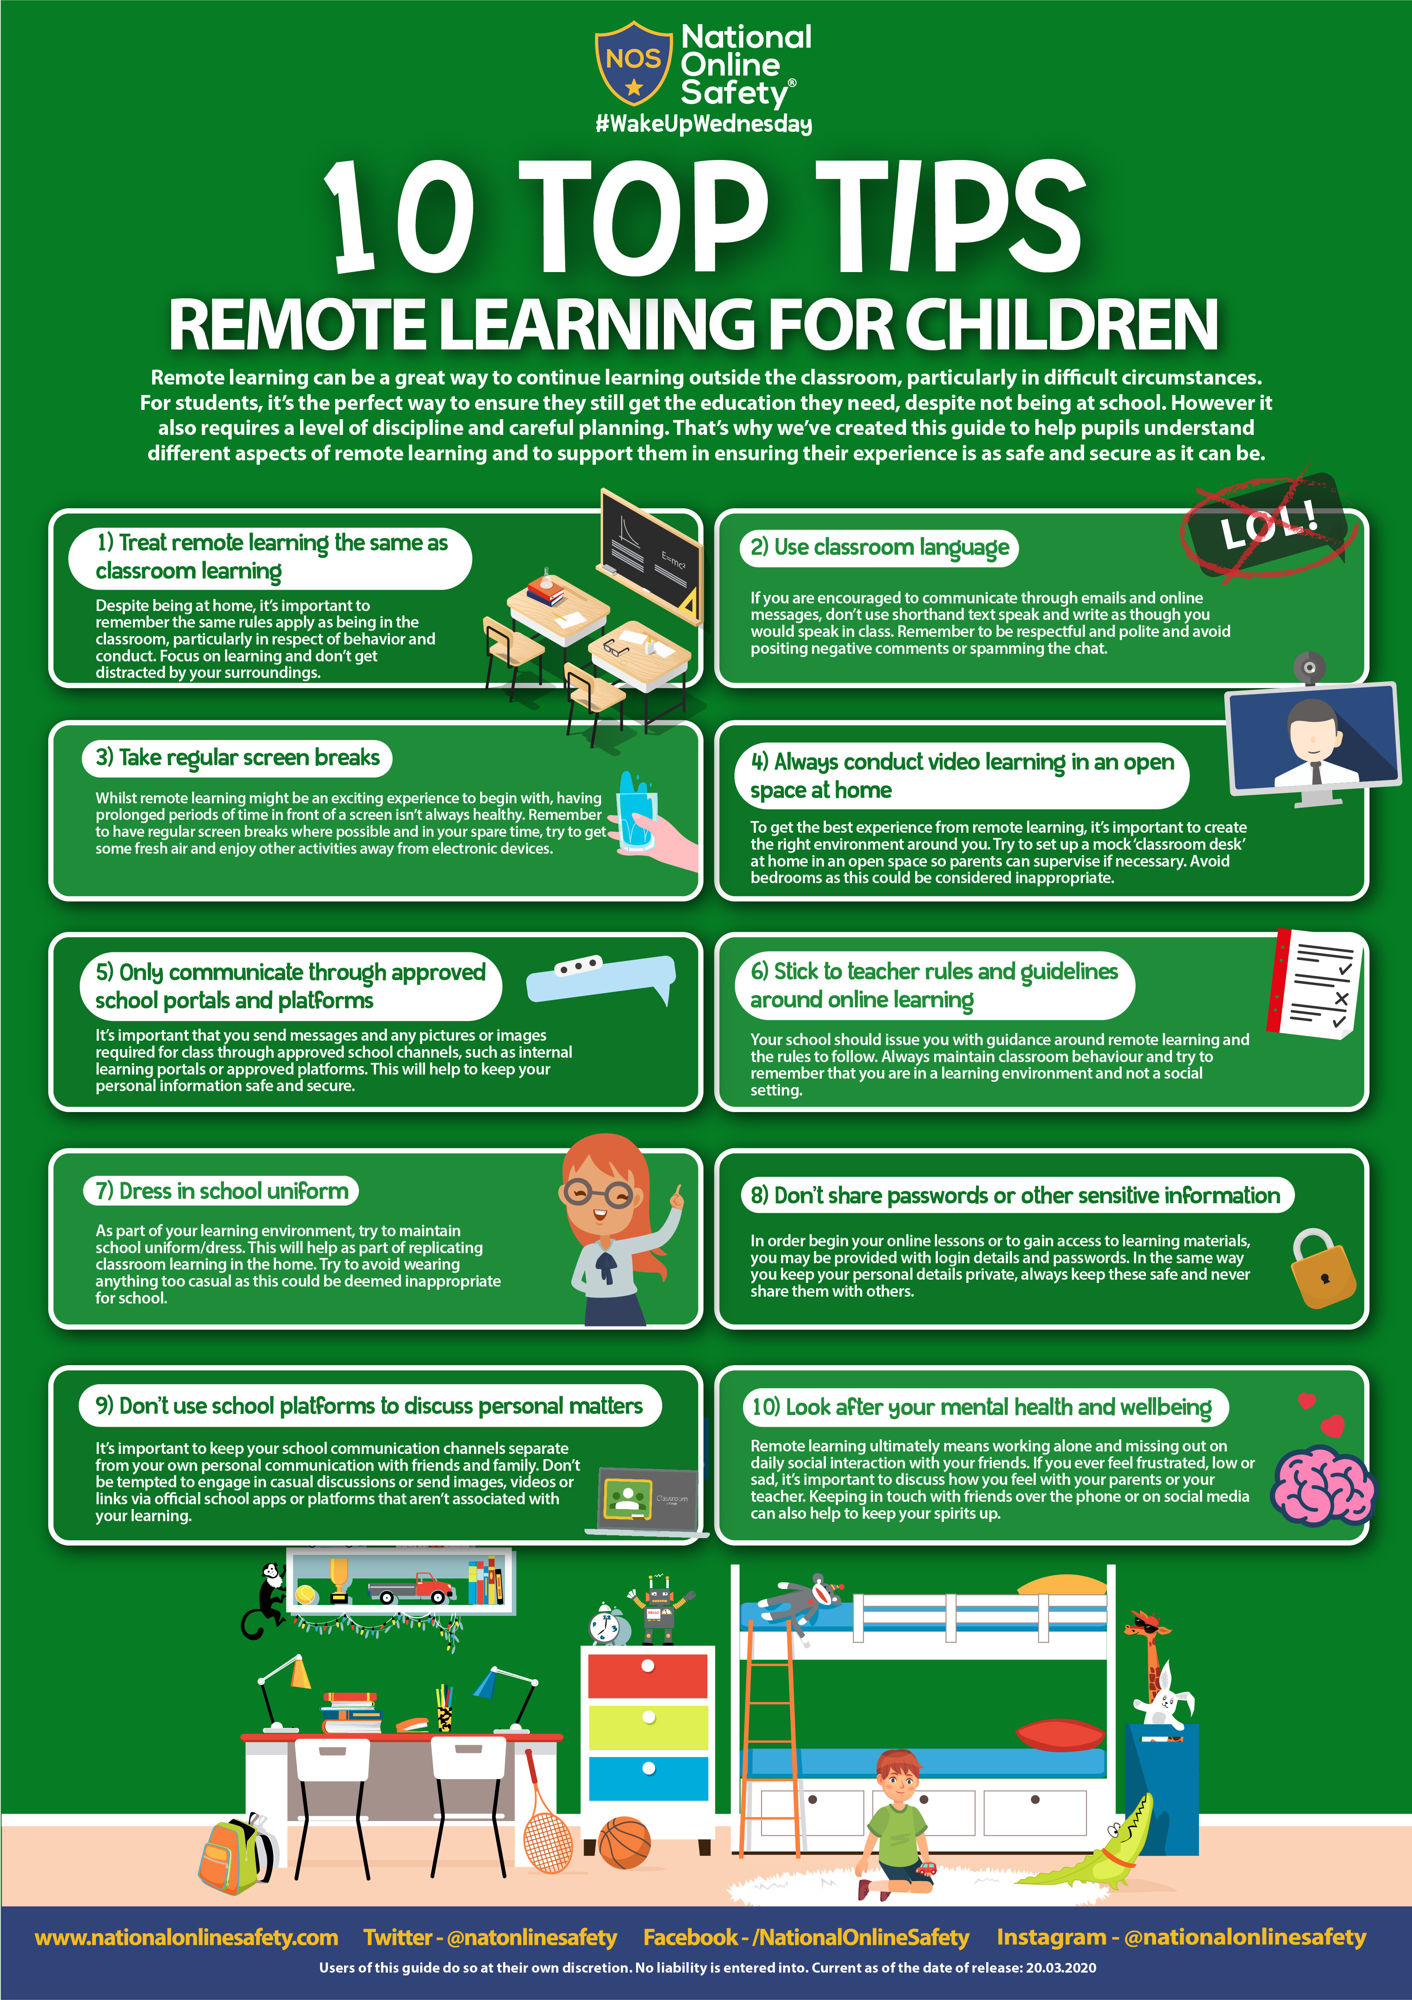 Top tips for remote learning children